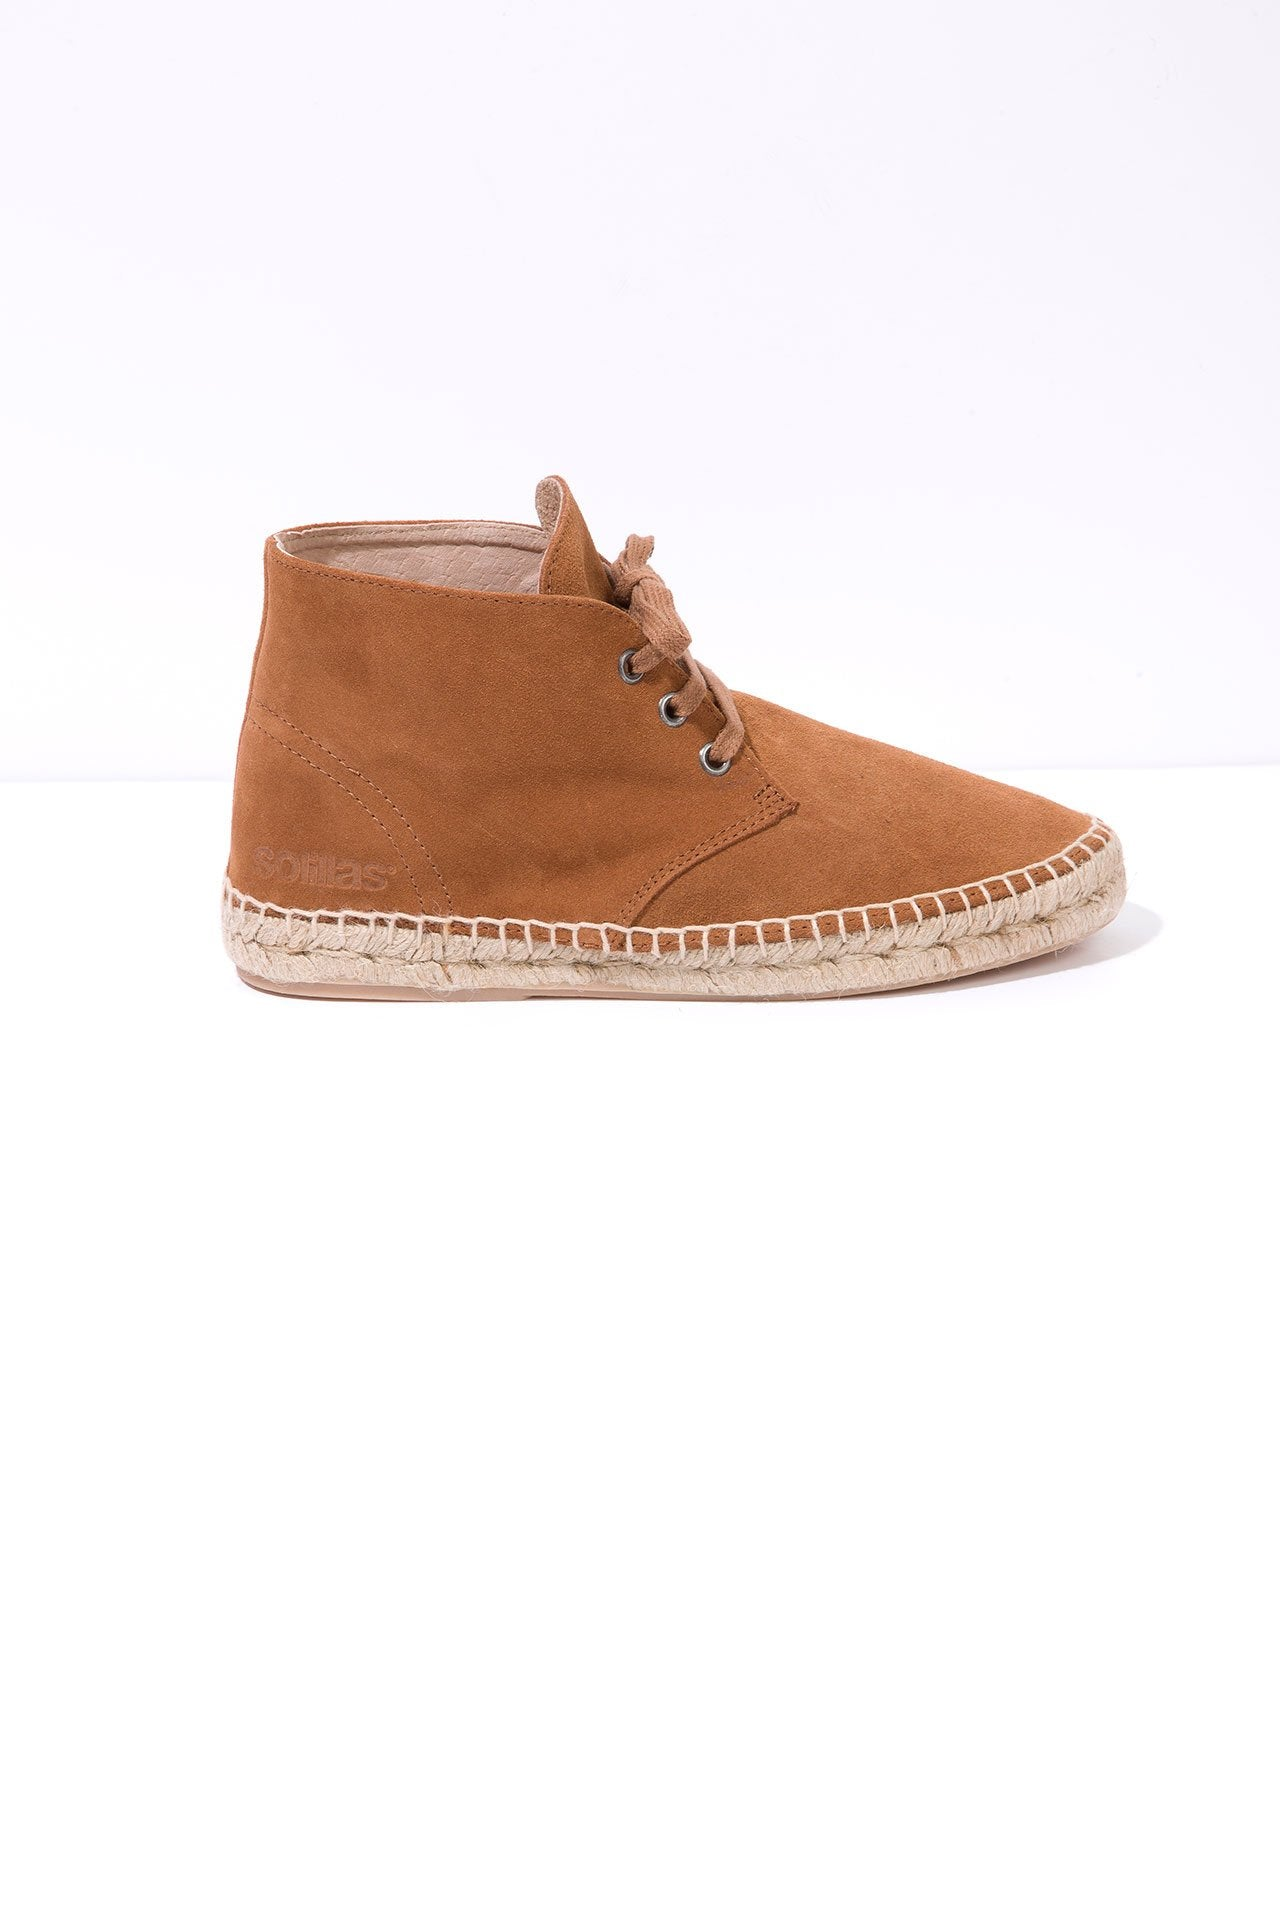 Madera - Suede Espadrille Boots